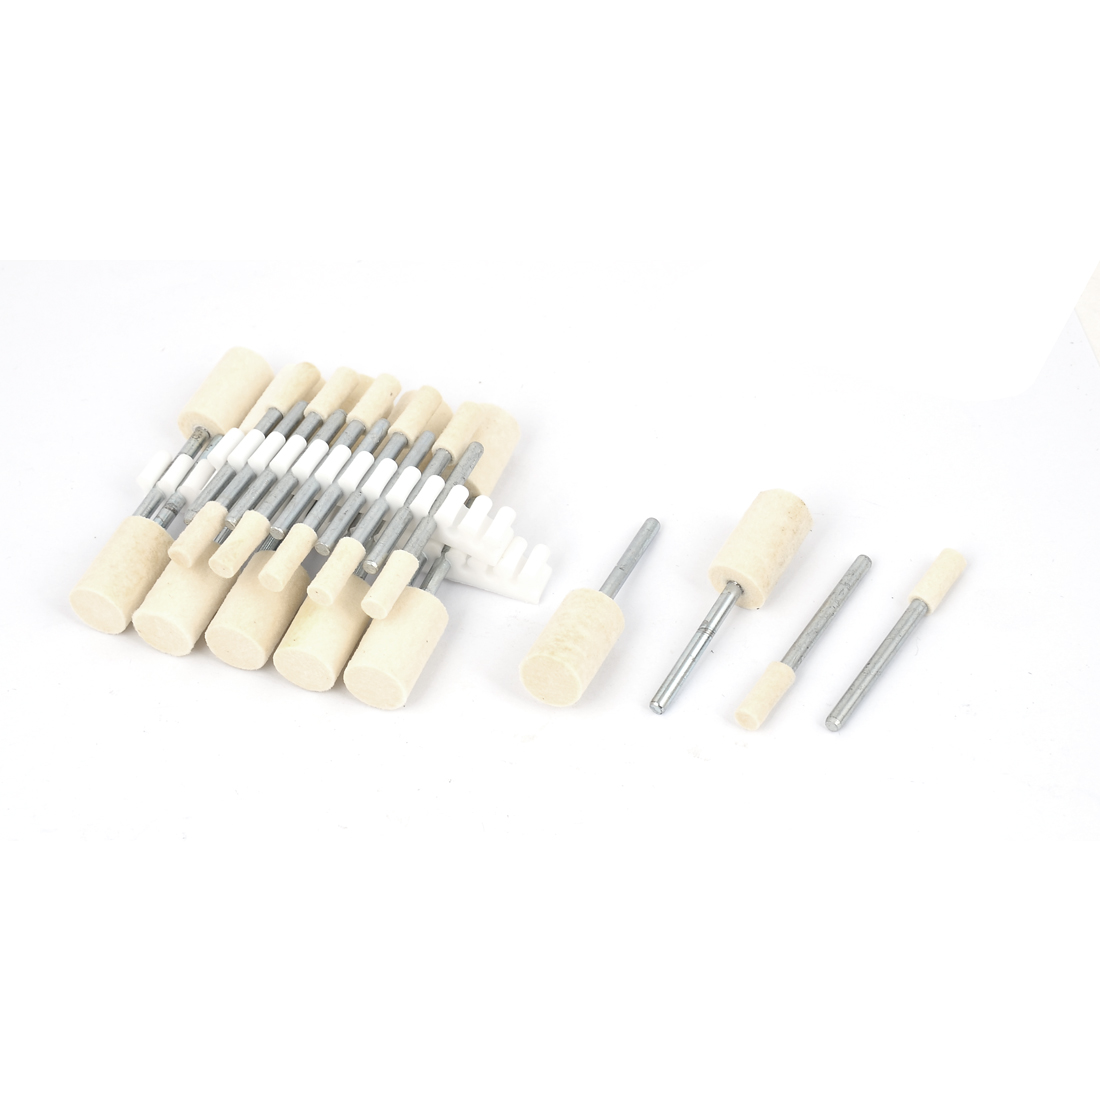 4mm/10mm Cylindrical Head 3mm Shank Mounted Points Polishing Buffing Tool 24 in 1